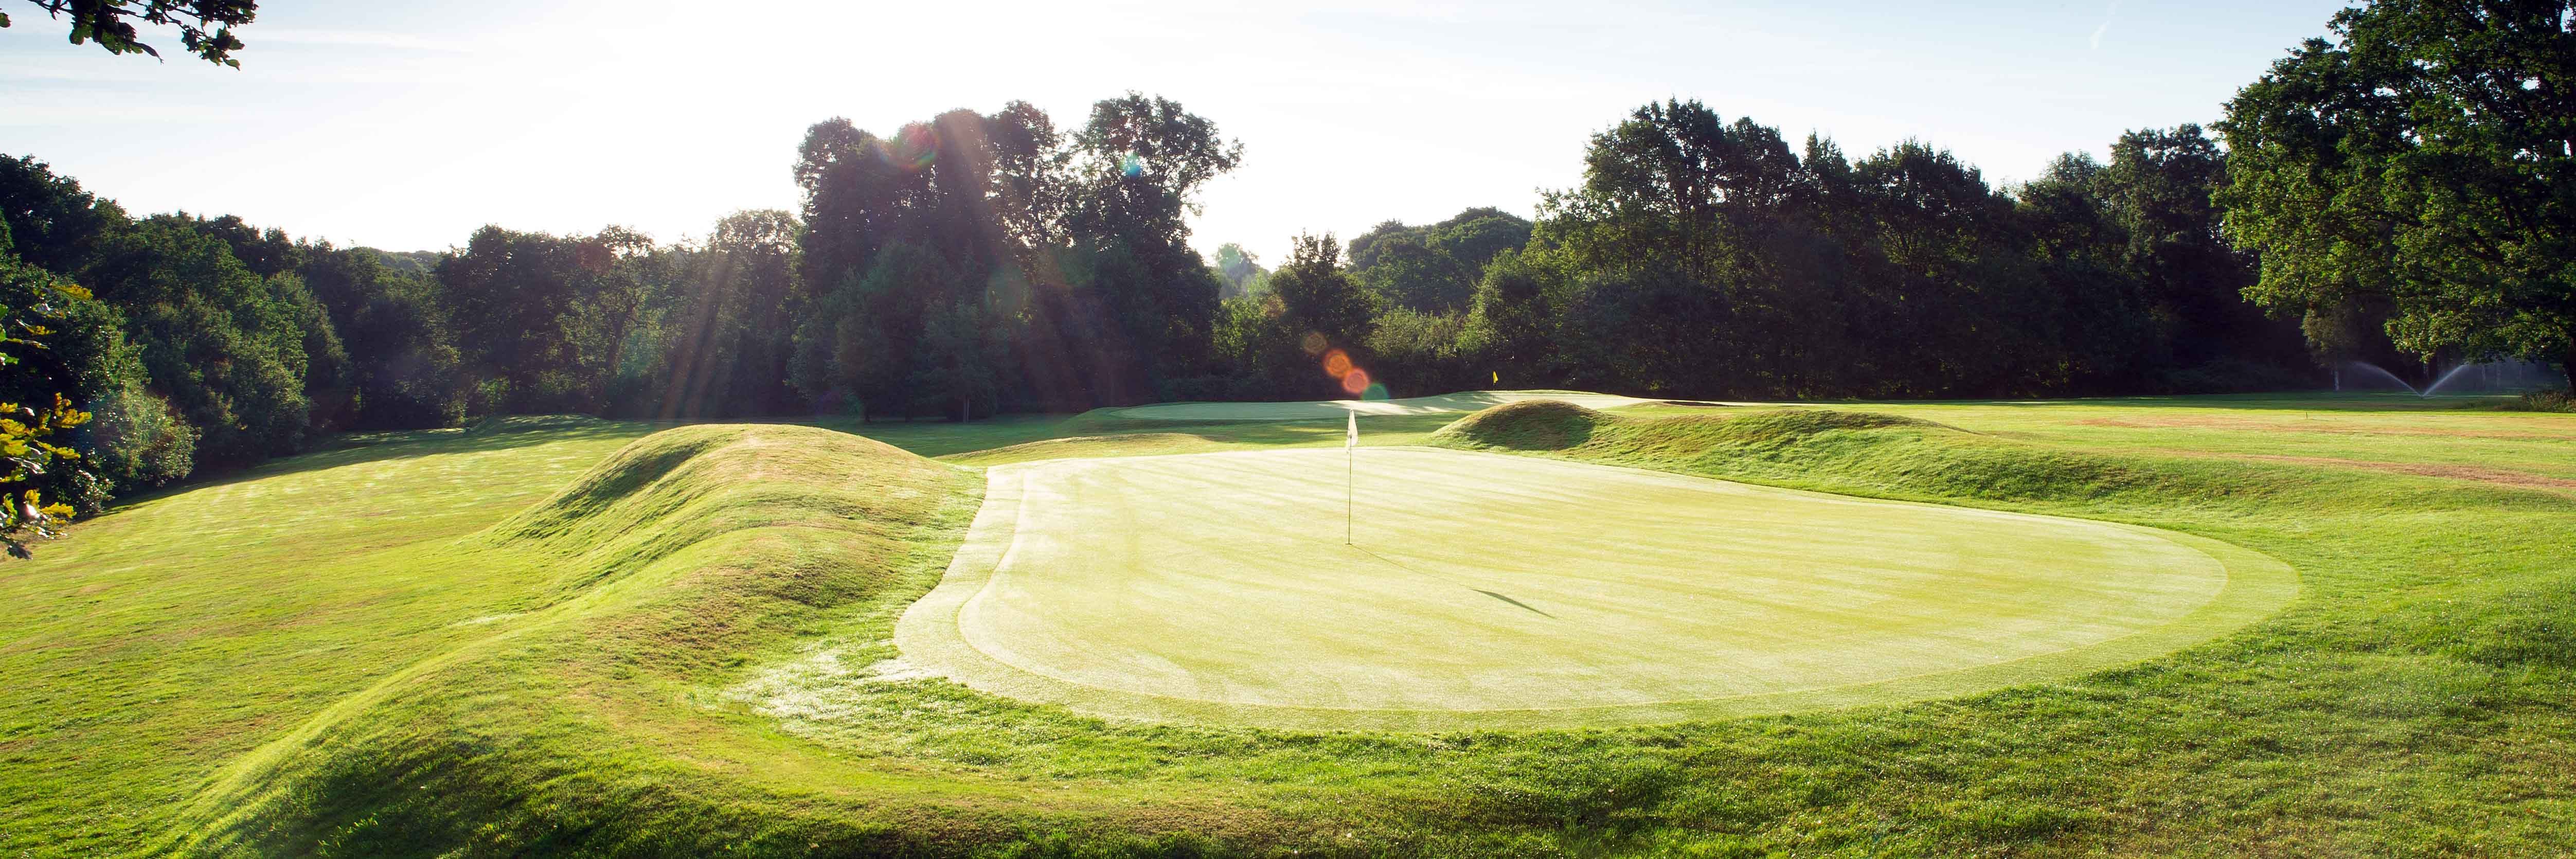 Surbiton golf club